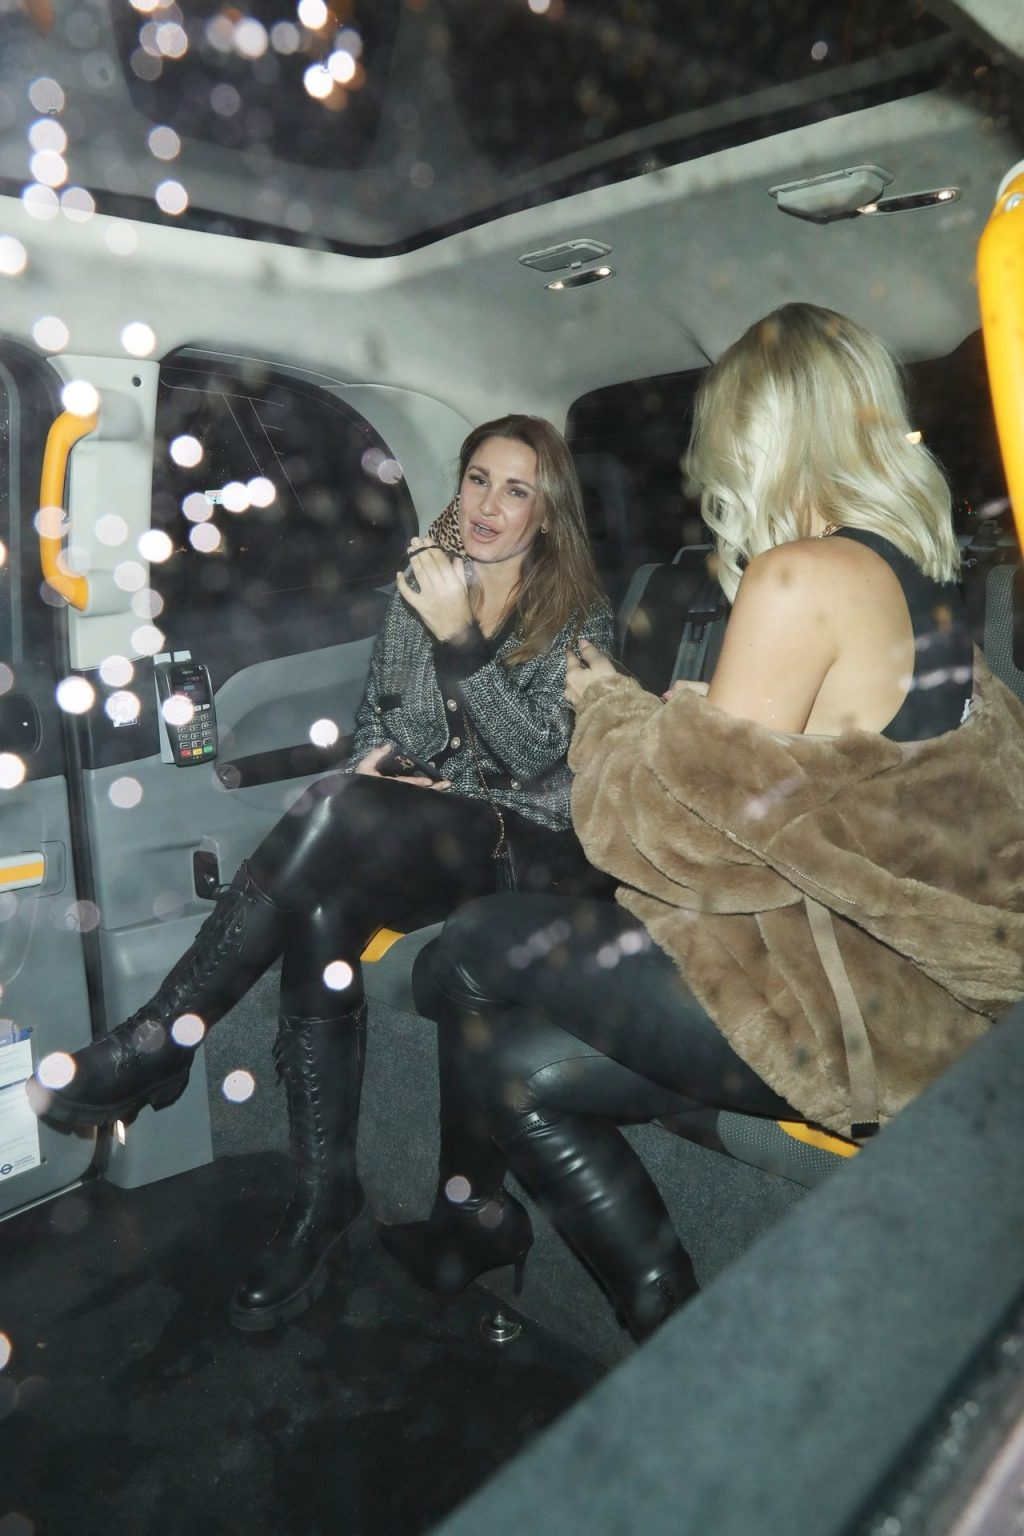 Sam and Billie Faiers are Pictured Leaving Proud Embankment (18 Photos)